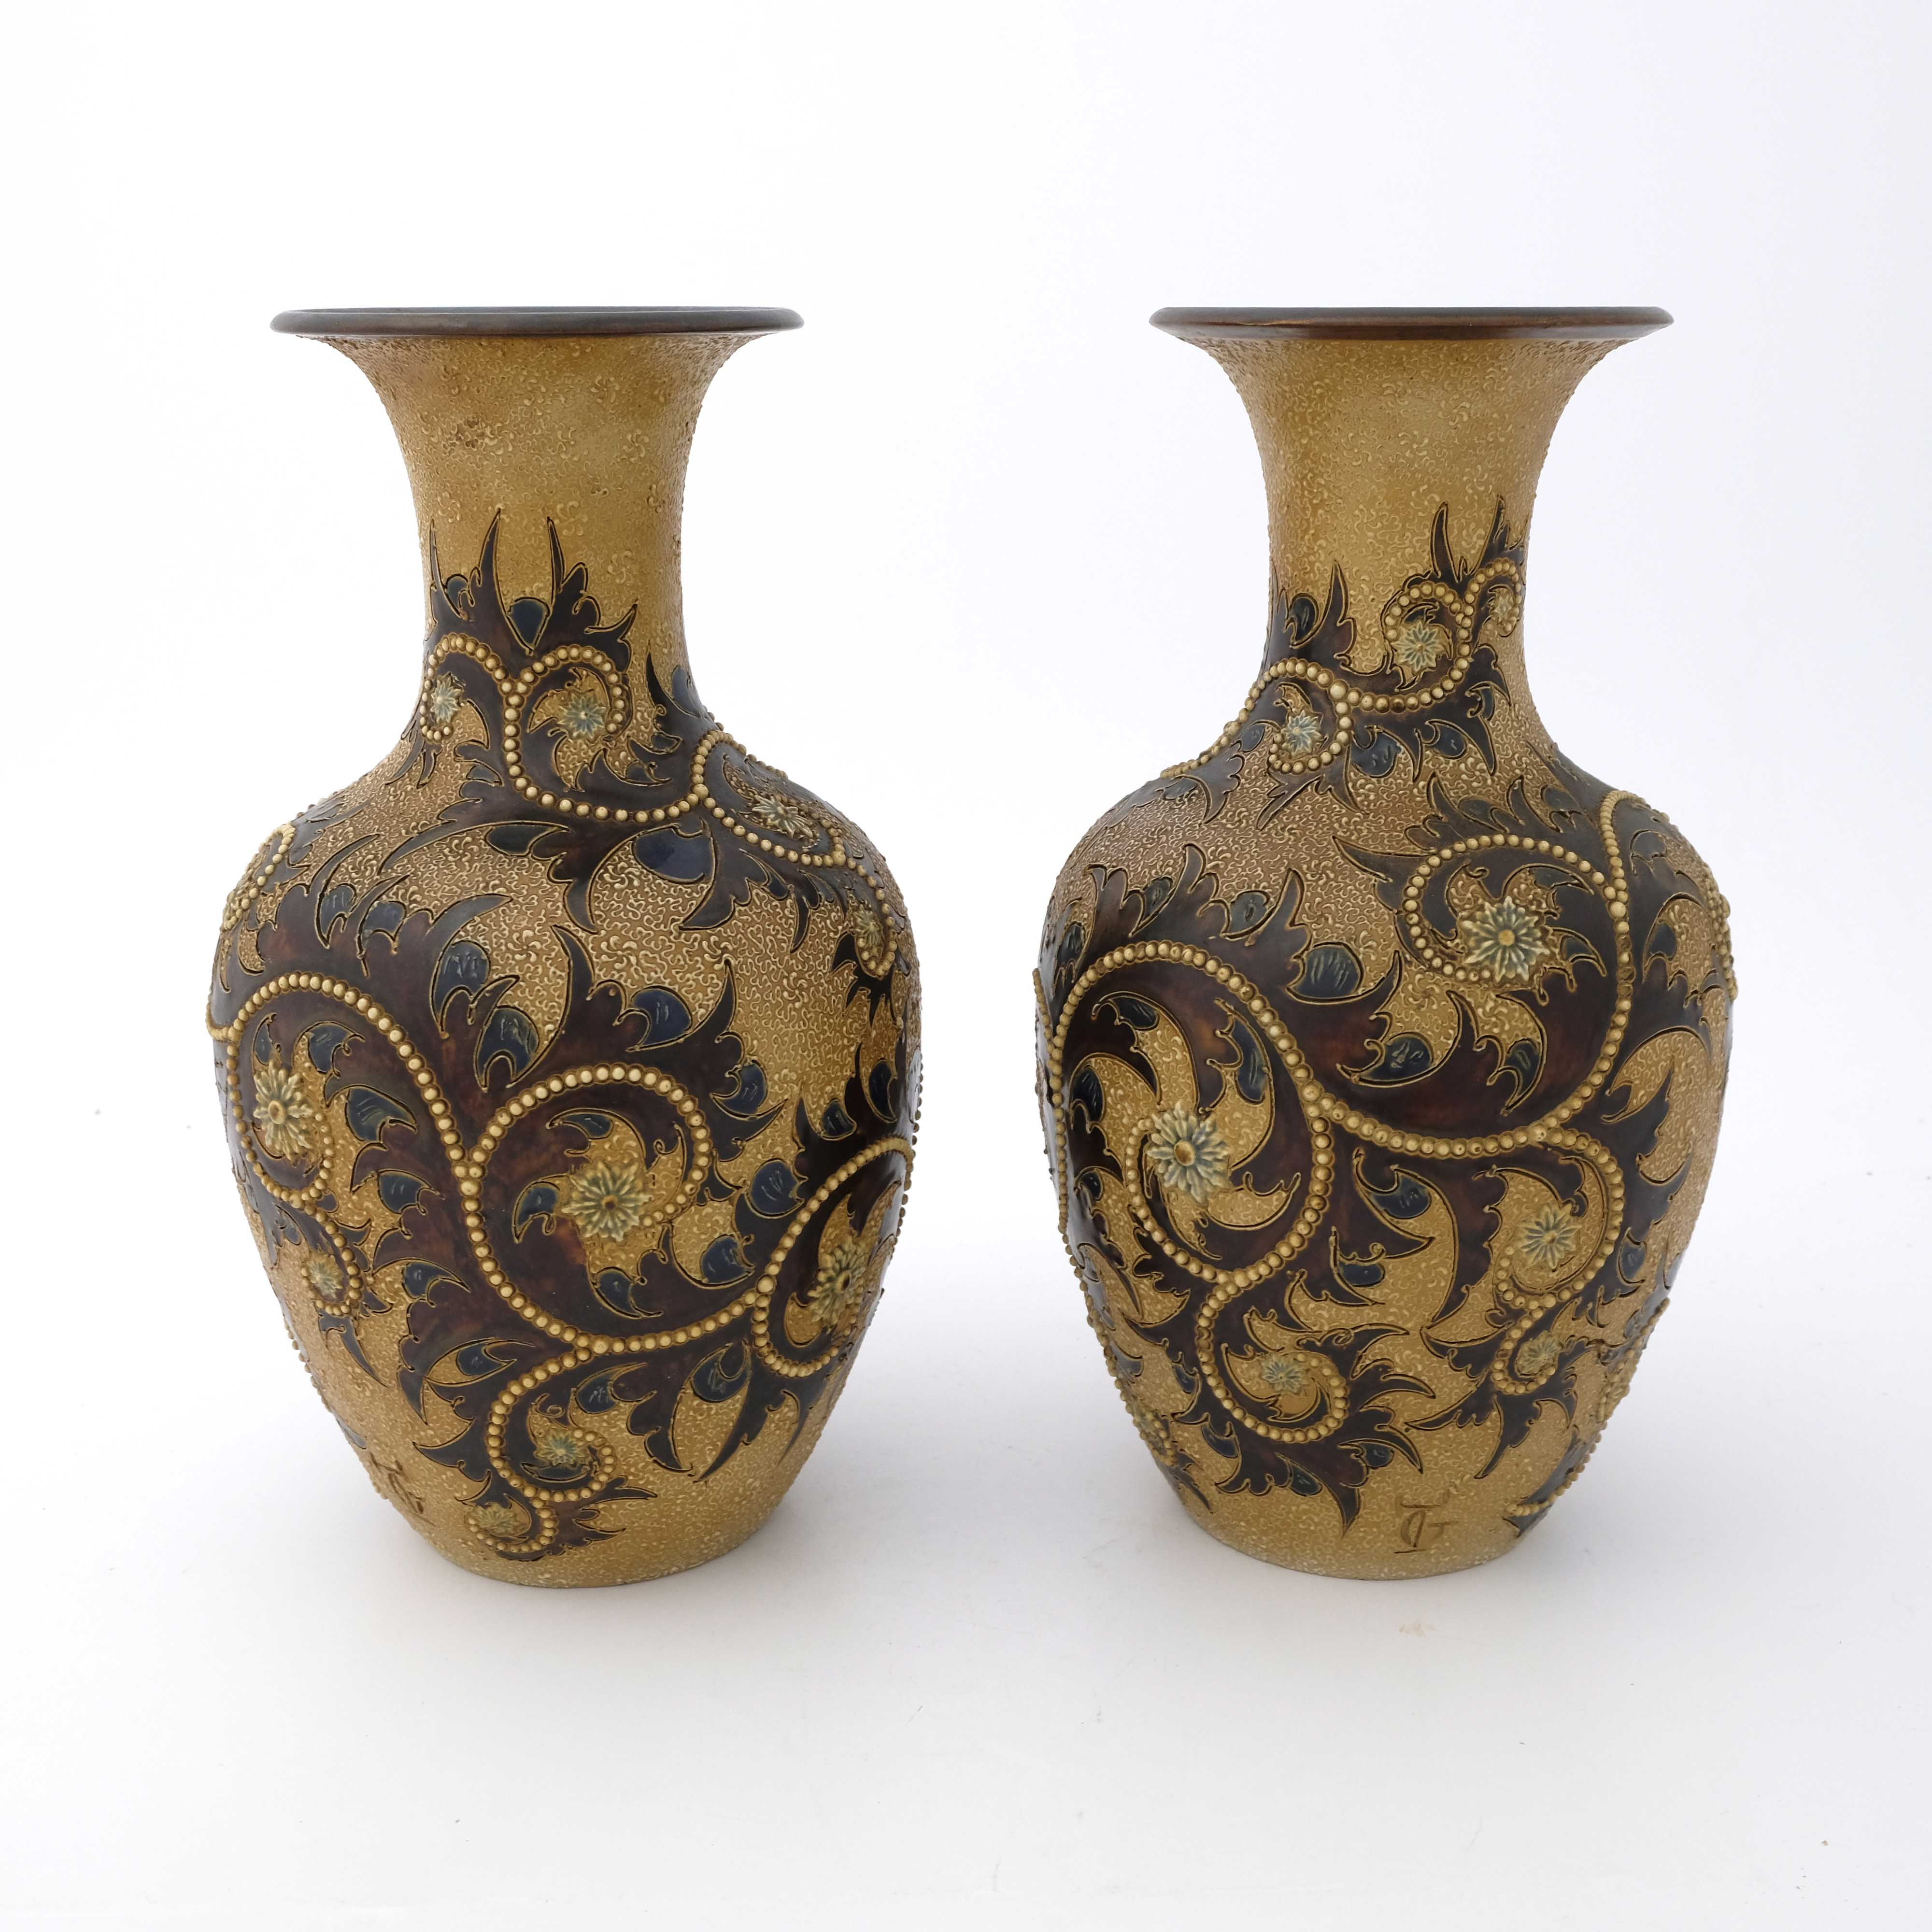 George Tinworth for Doulton Lambeth, a pair of sto